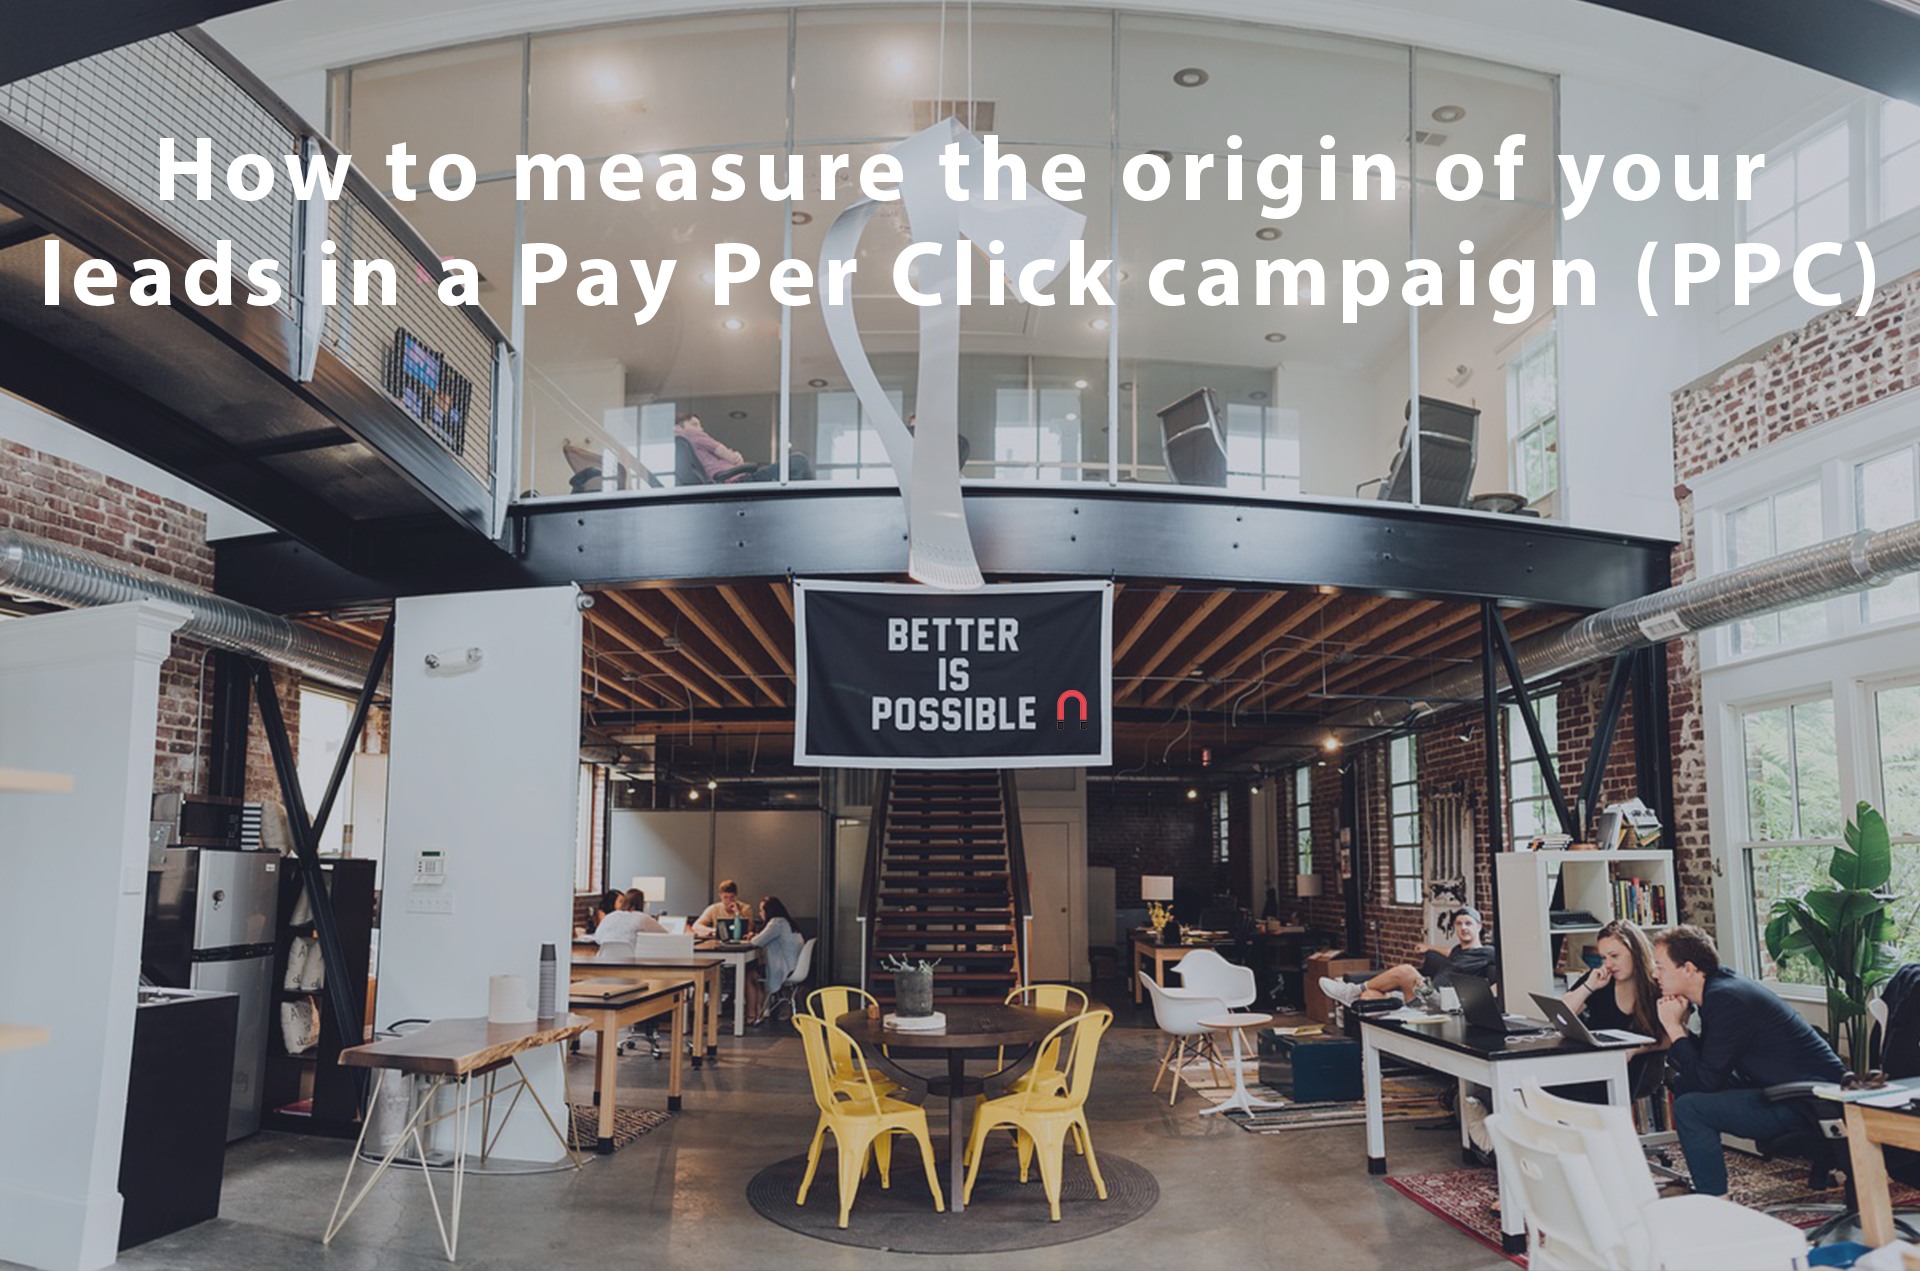 How to measure the origin of your leads in a Pay Per Click